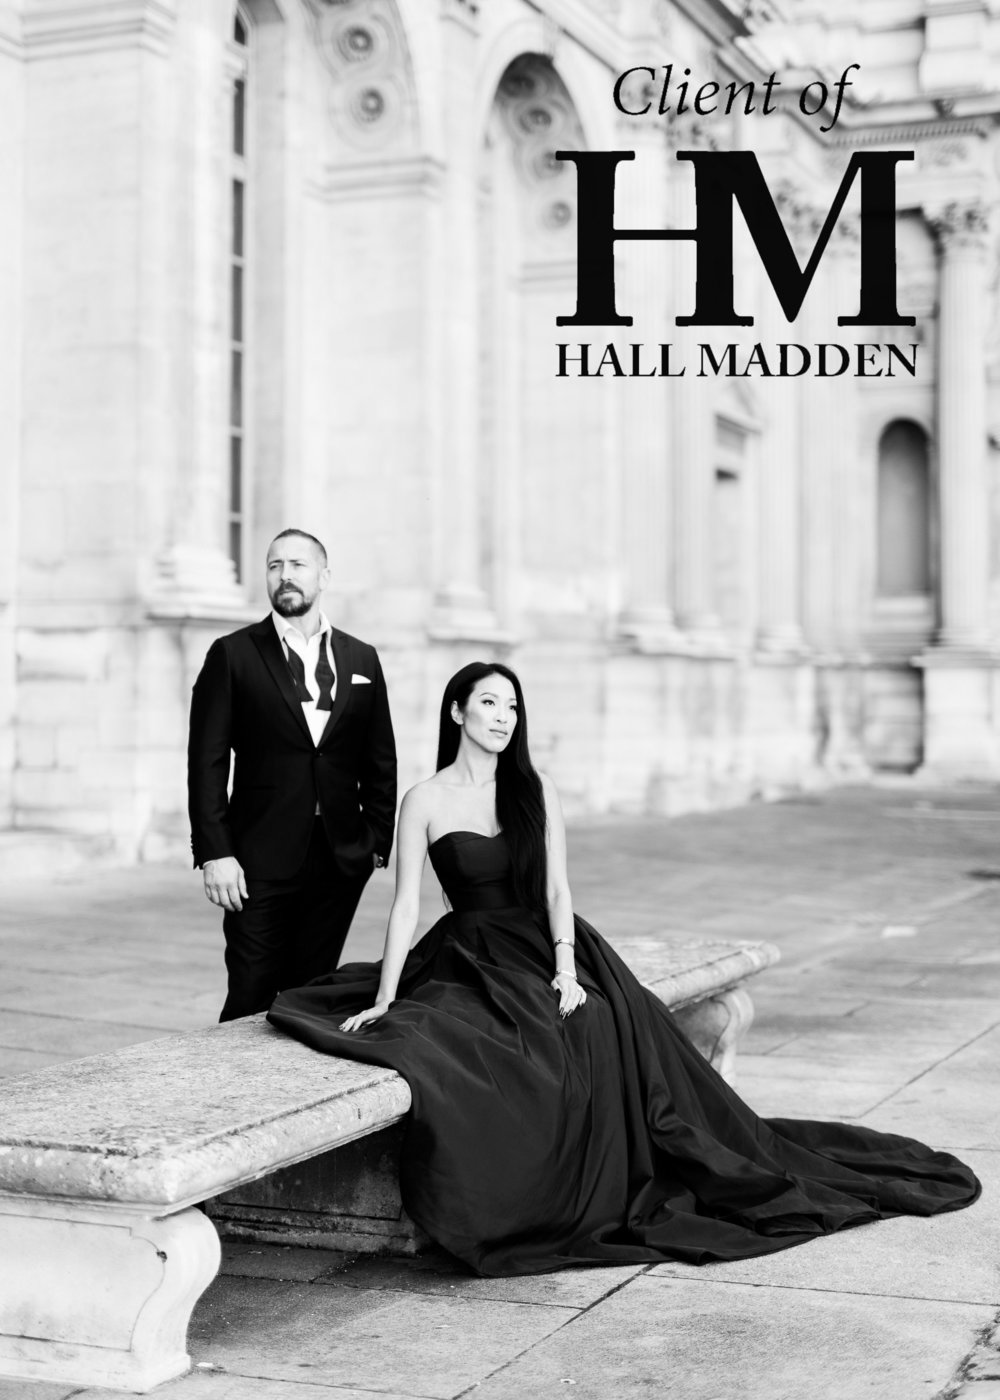 HALL MADDEN